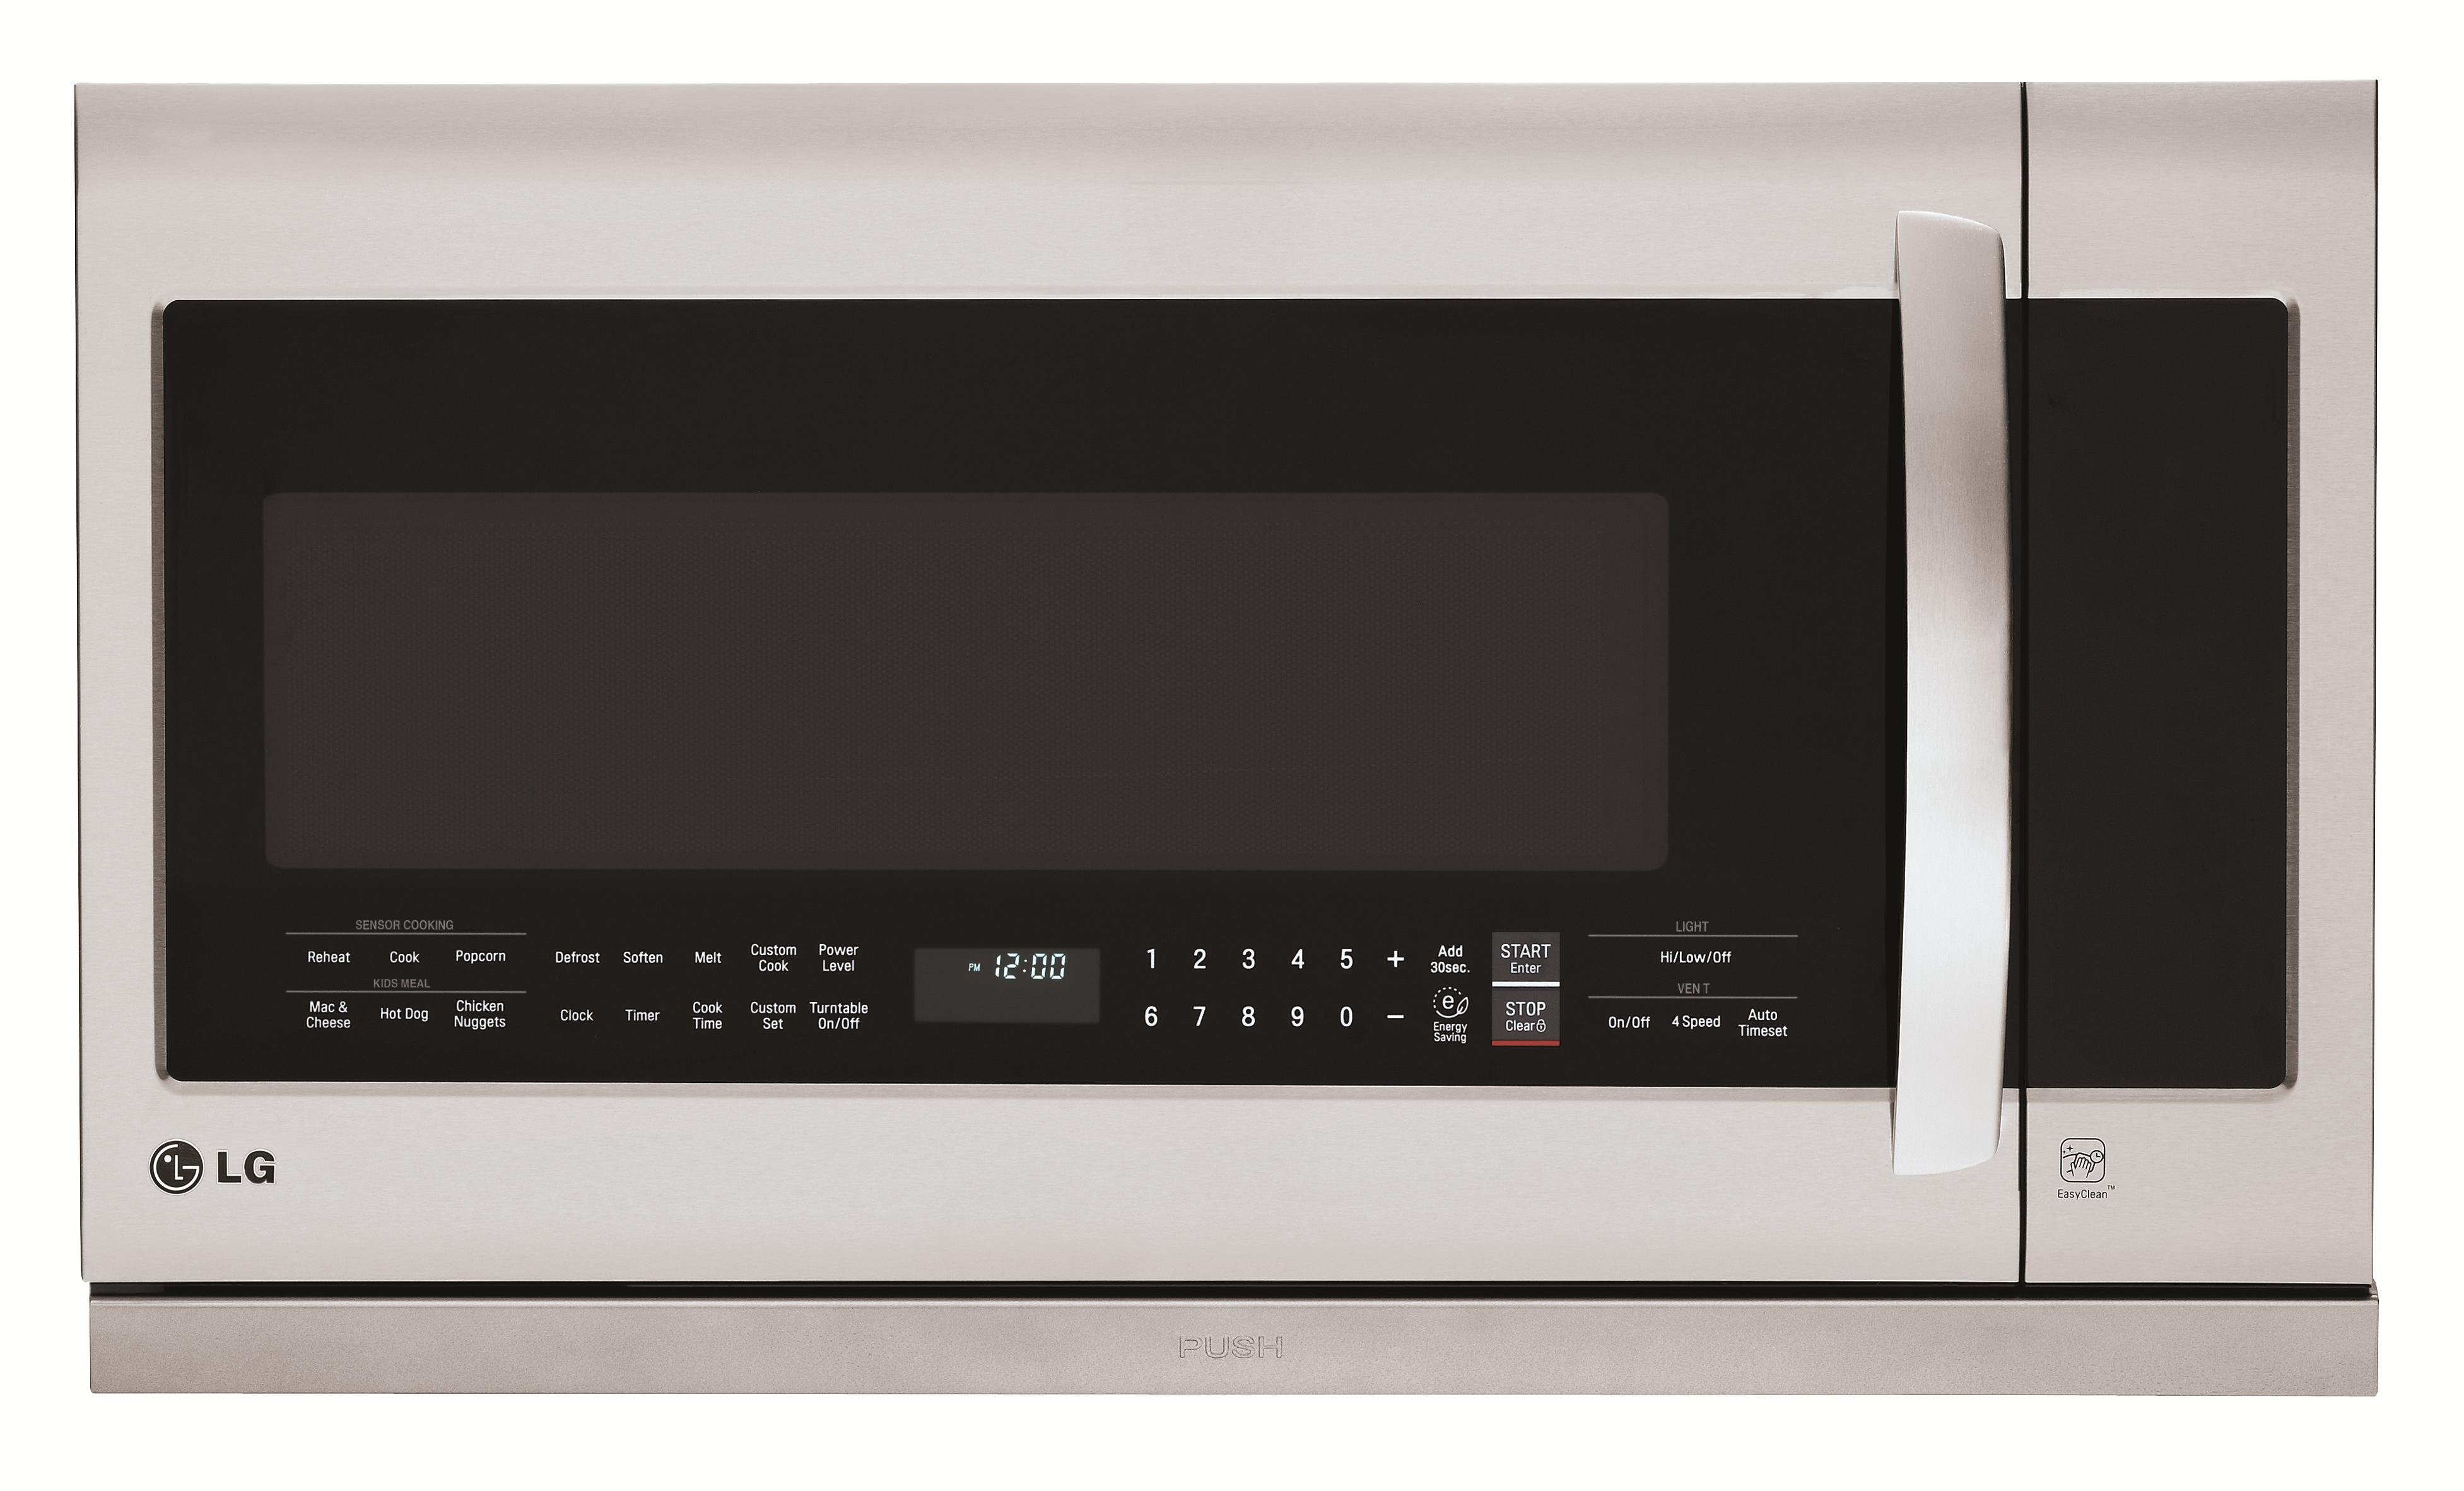 LG Appliances Microwaves 2.2 cu. ft. Over-the-Range Microwave - Item Number: LMHM2237ST